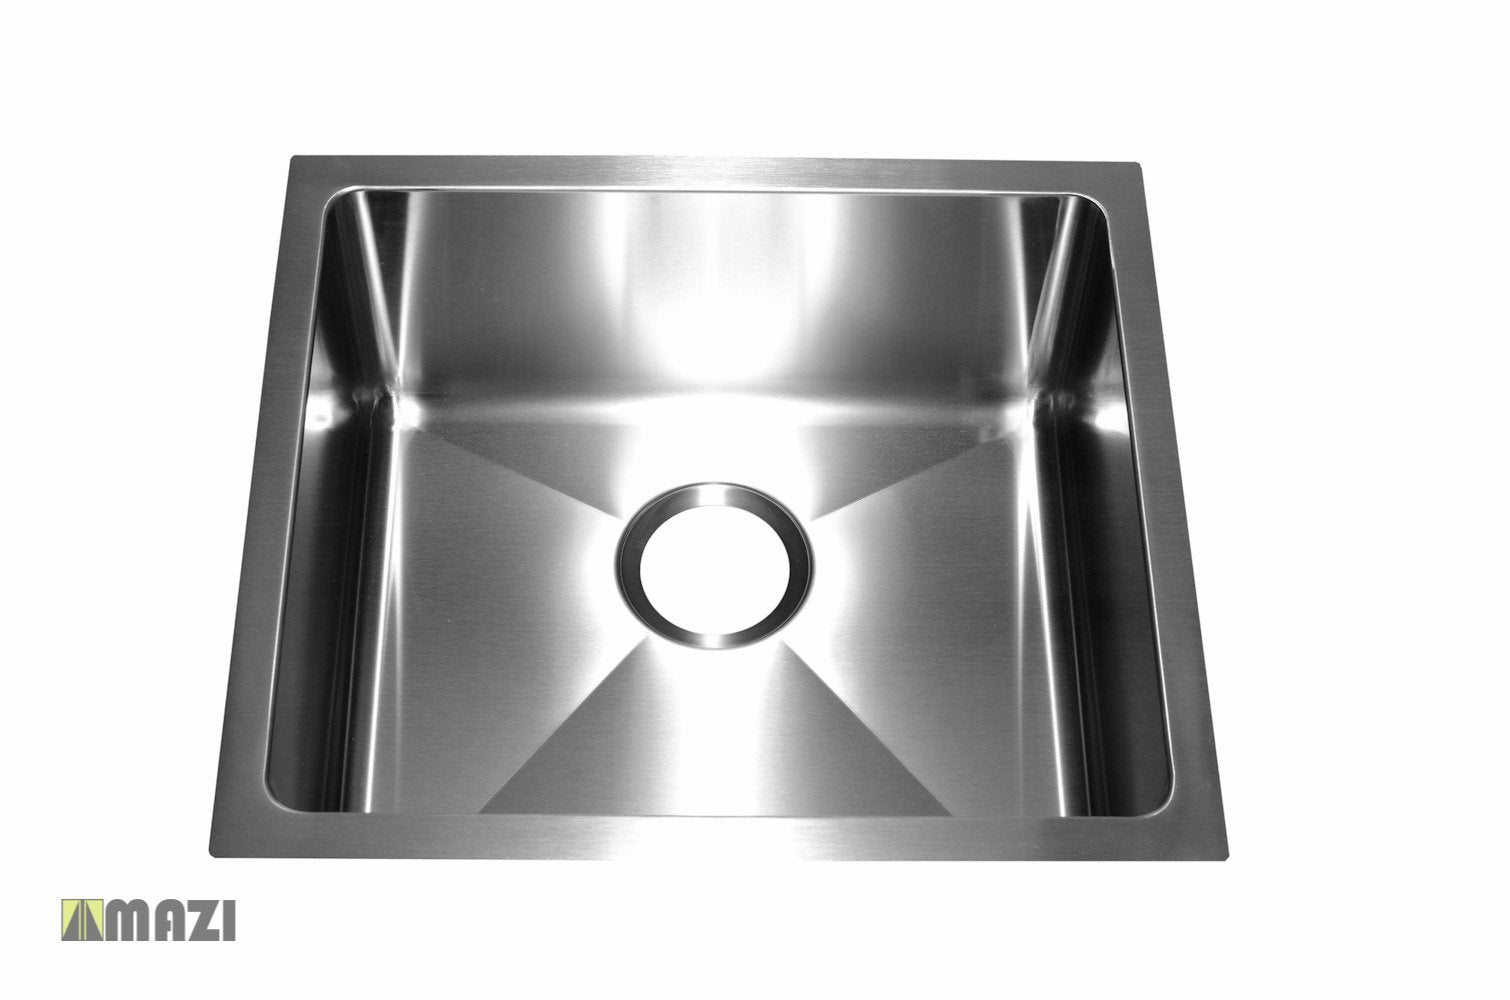 Stainless steel kitchen sink rs1917